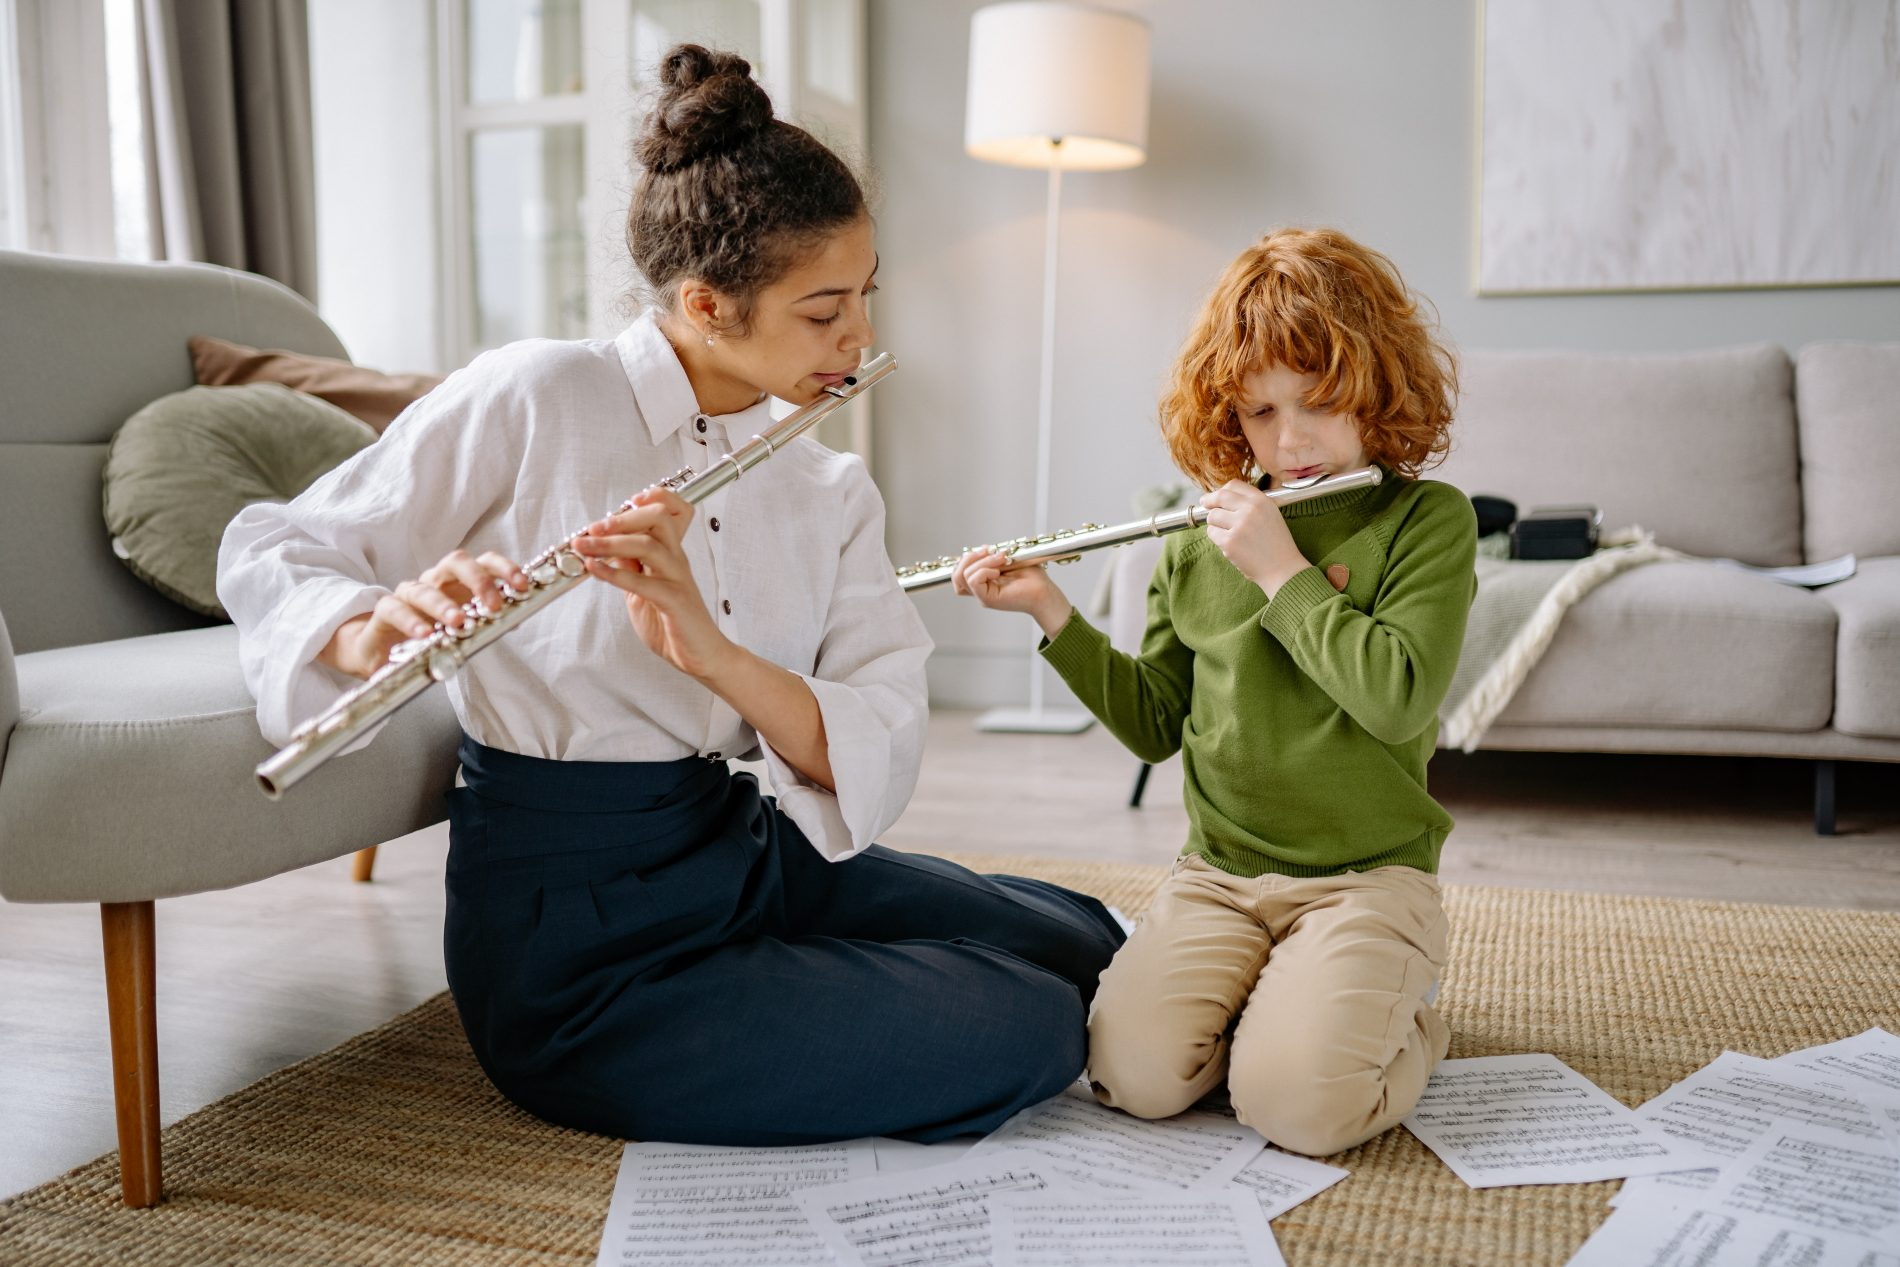 learning a musical instrument online